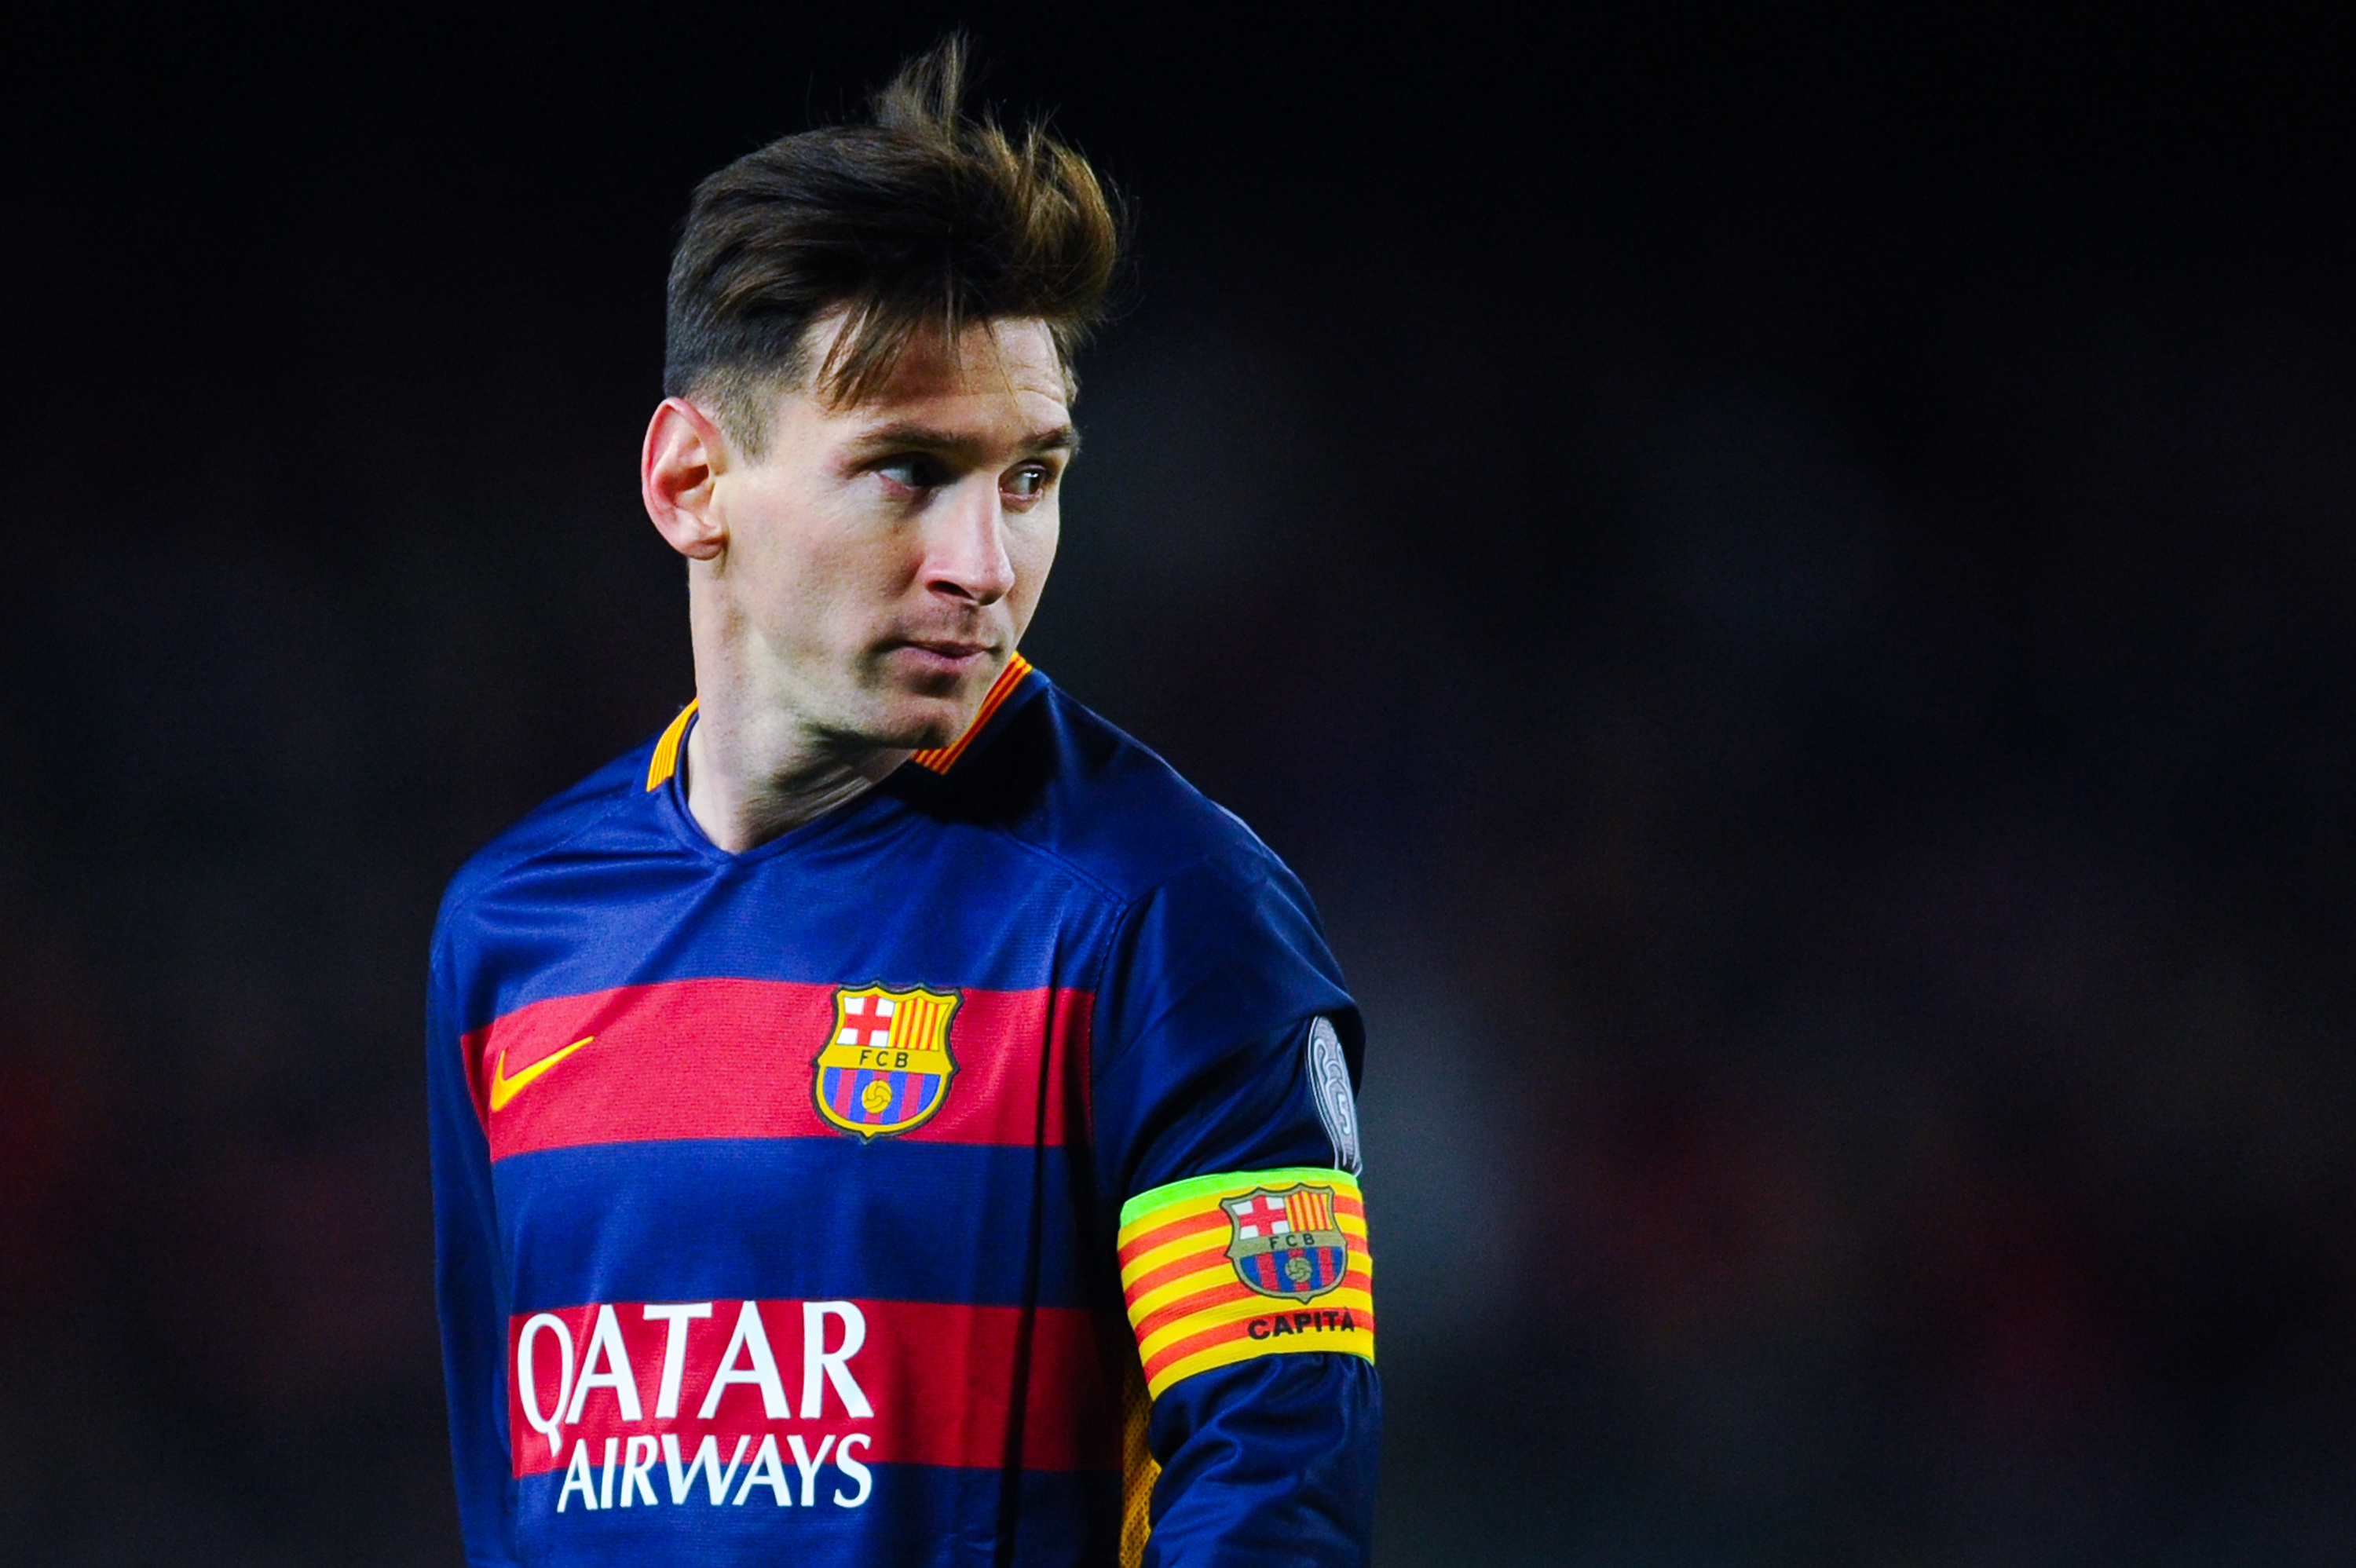 Lionel Messi and father sentenced to 21 months in prison will